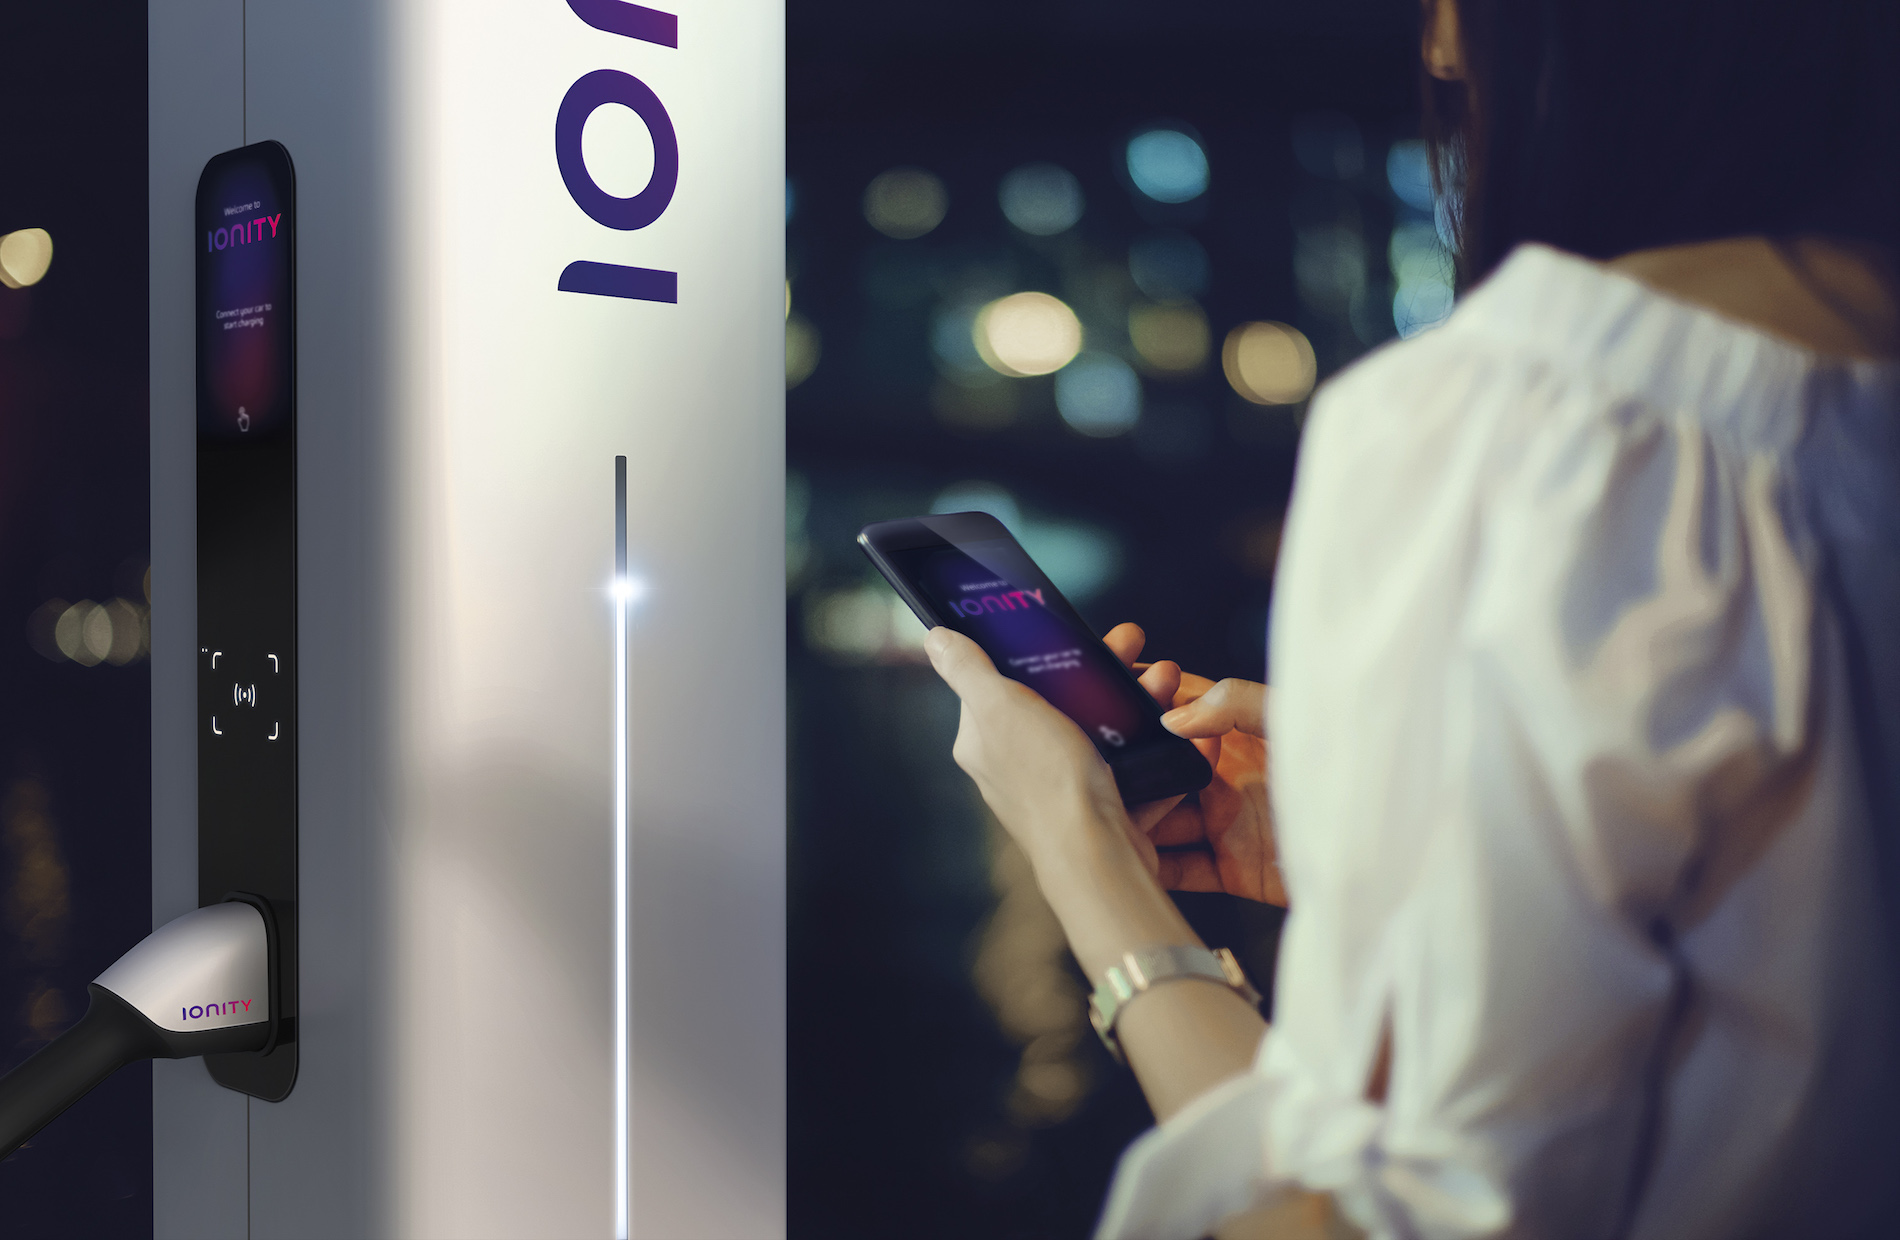 Ionity Charging